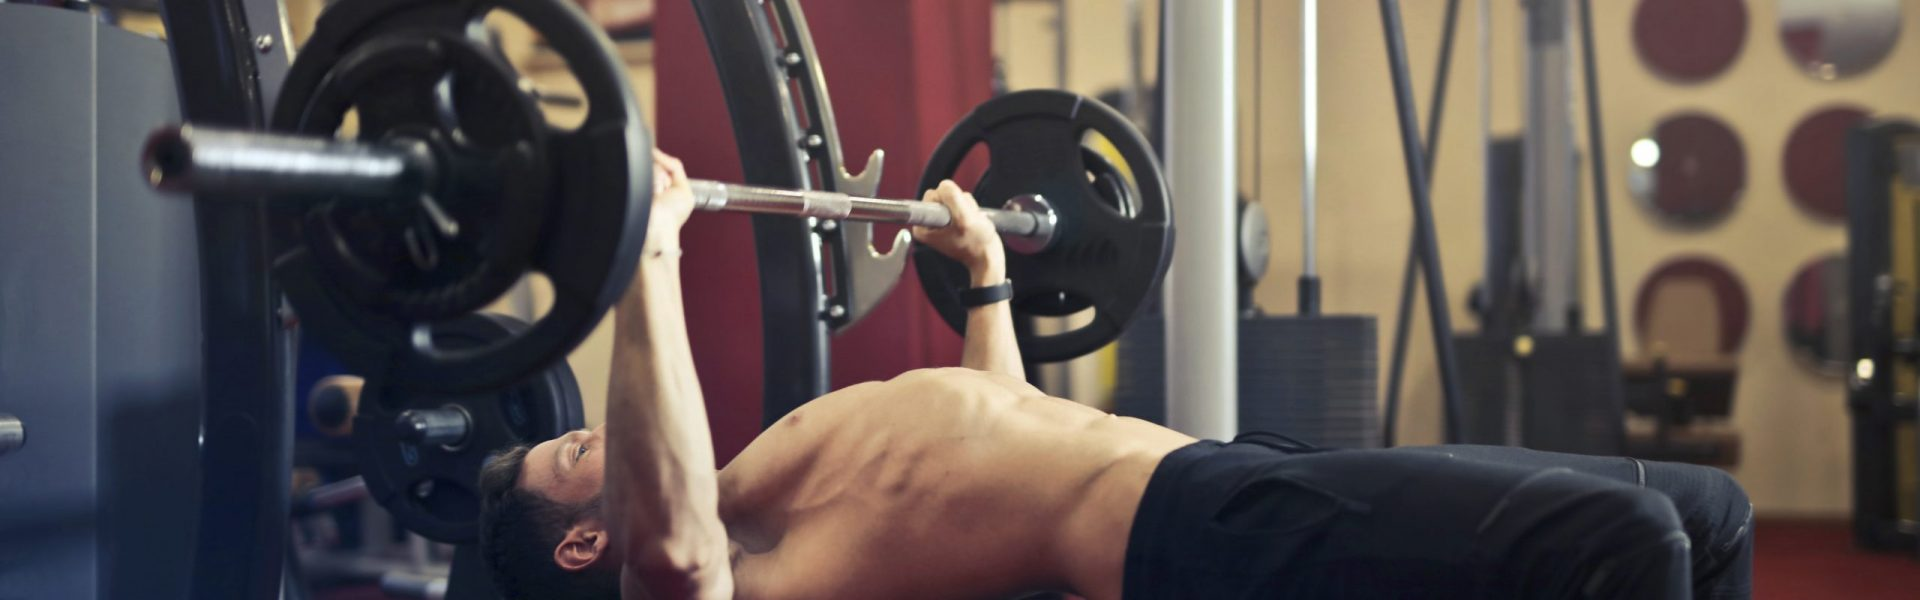 gym fitness insurance, man lifting weights on bench